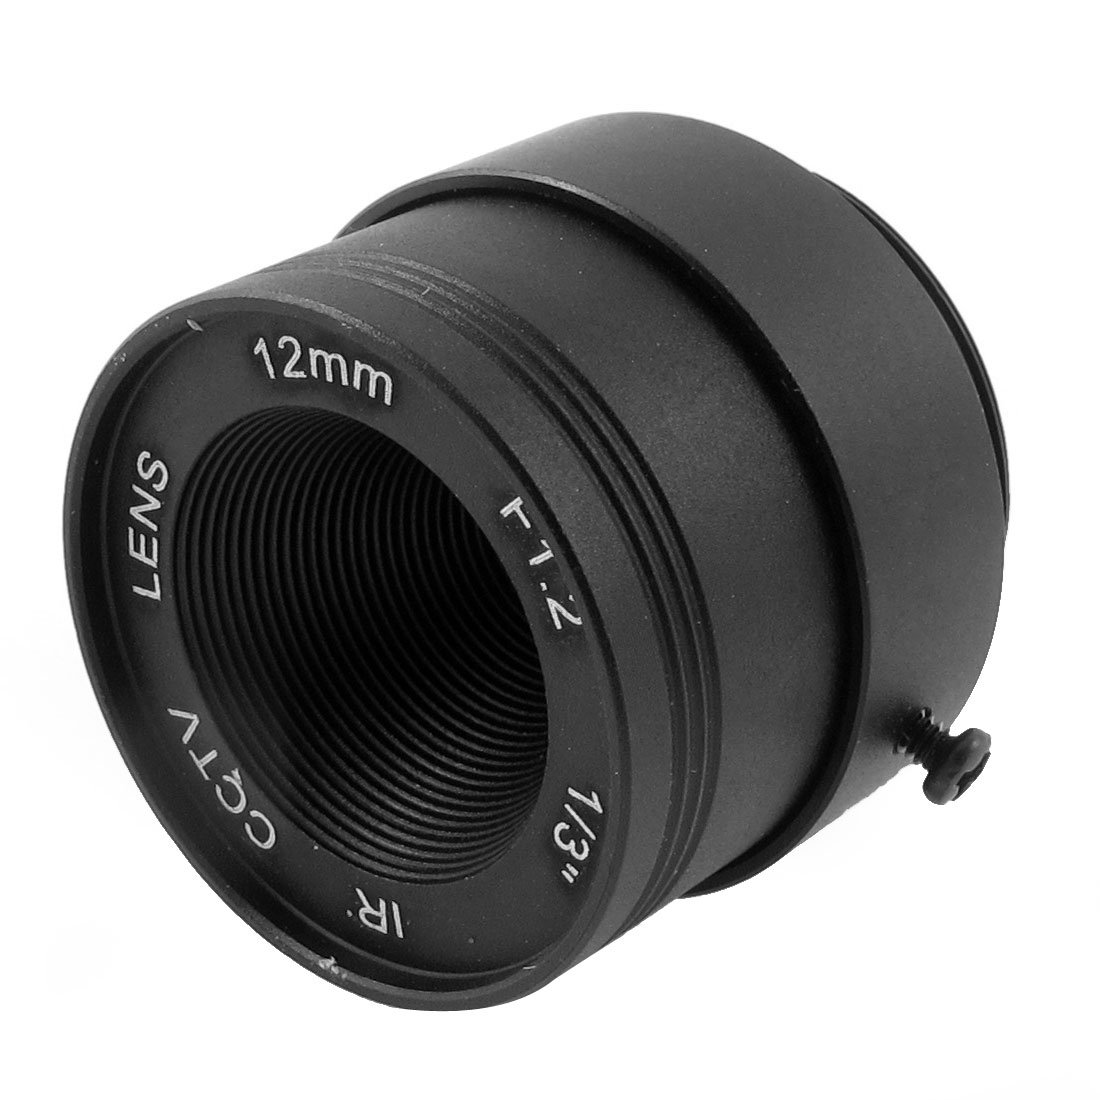 "12mm F1.2 1/3"" CCTV IR Lens CS Mount for Security Dome IP Camera"